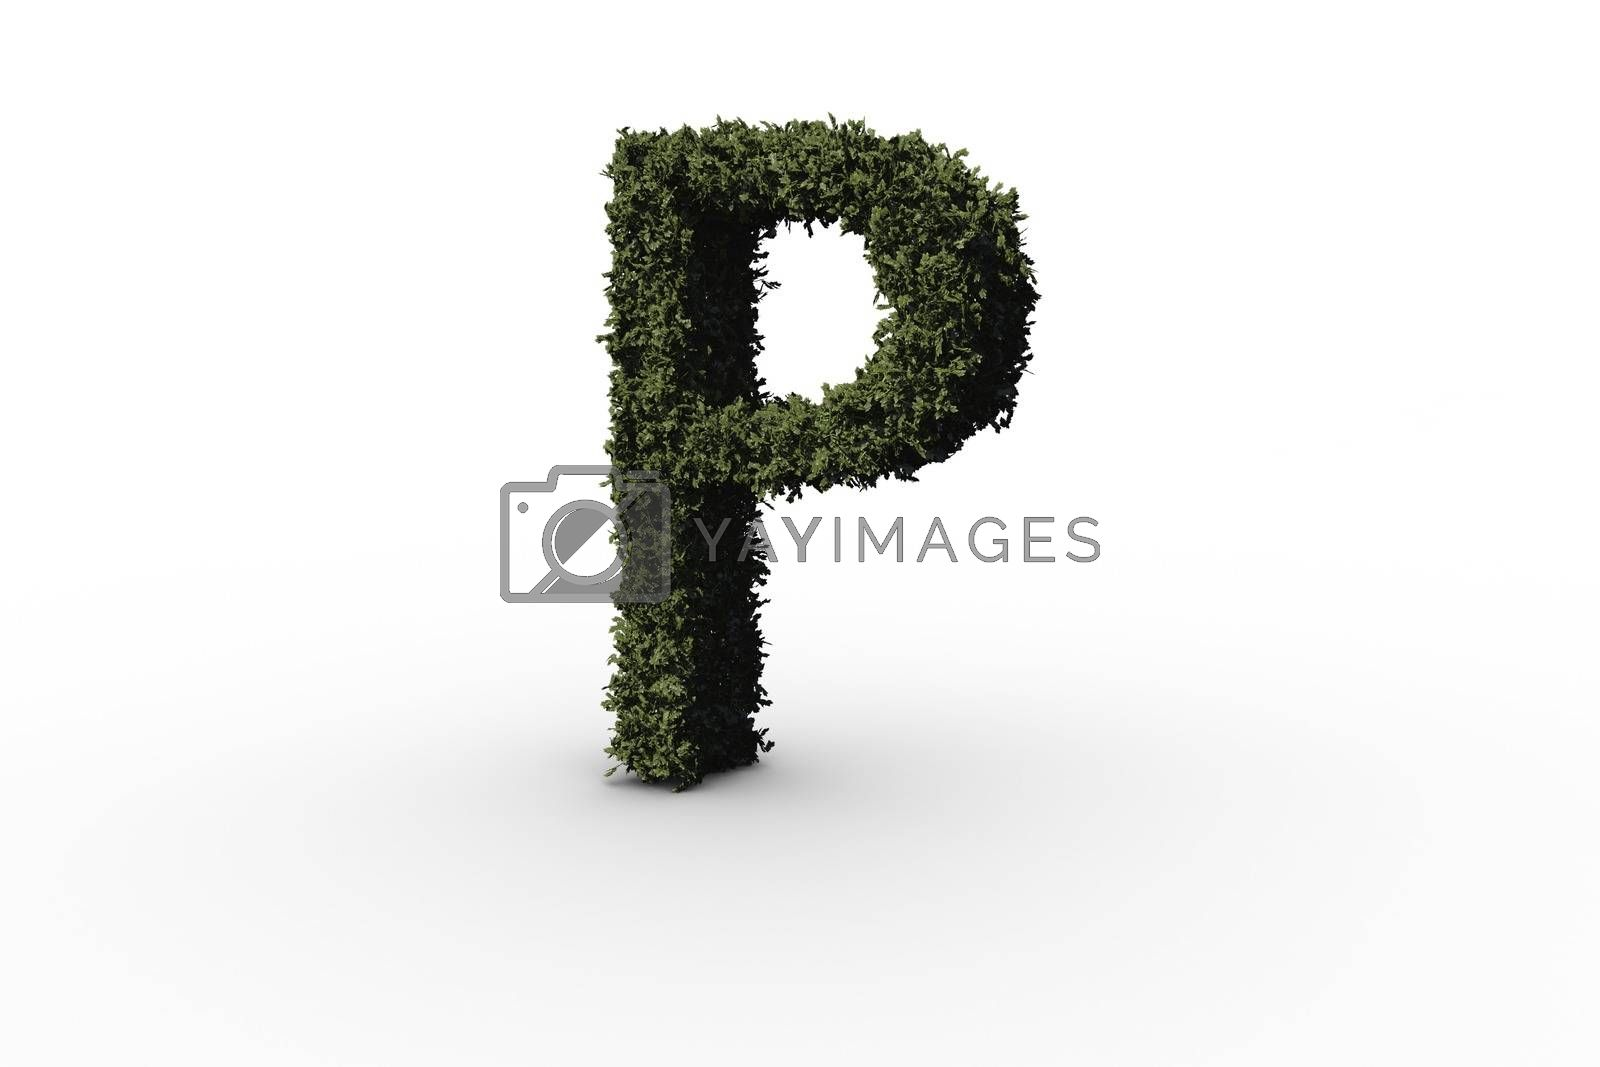 Royalty free image of Capital letter p made of leaves by Wavebreakmedia